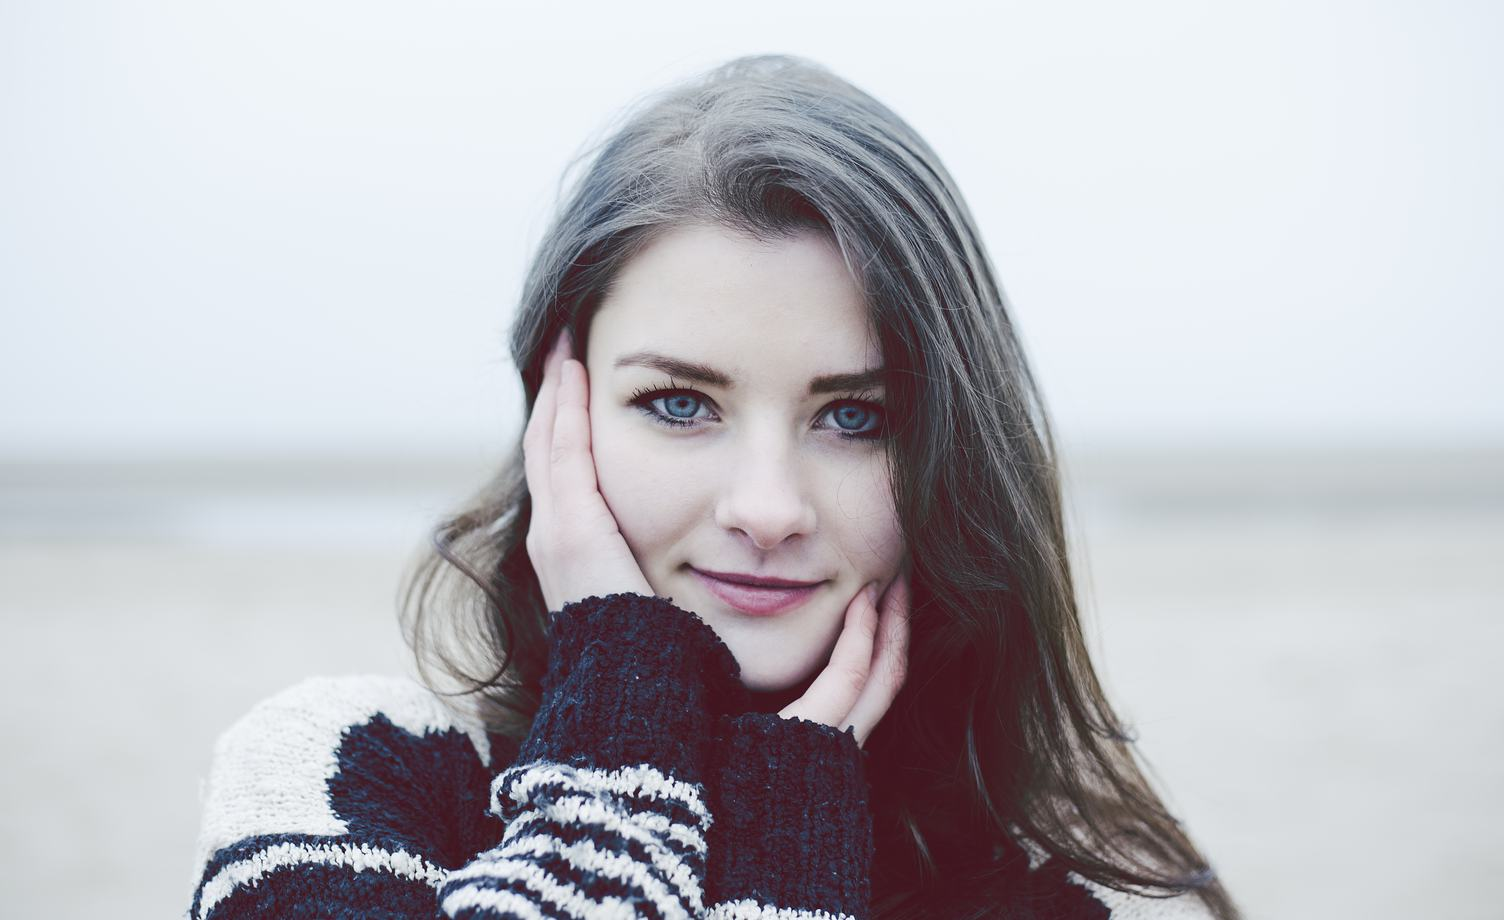 Beautiful Young Woman in a Black and White Knitted Sweater